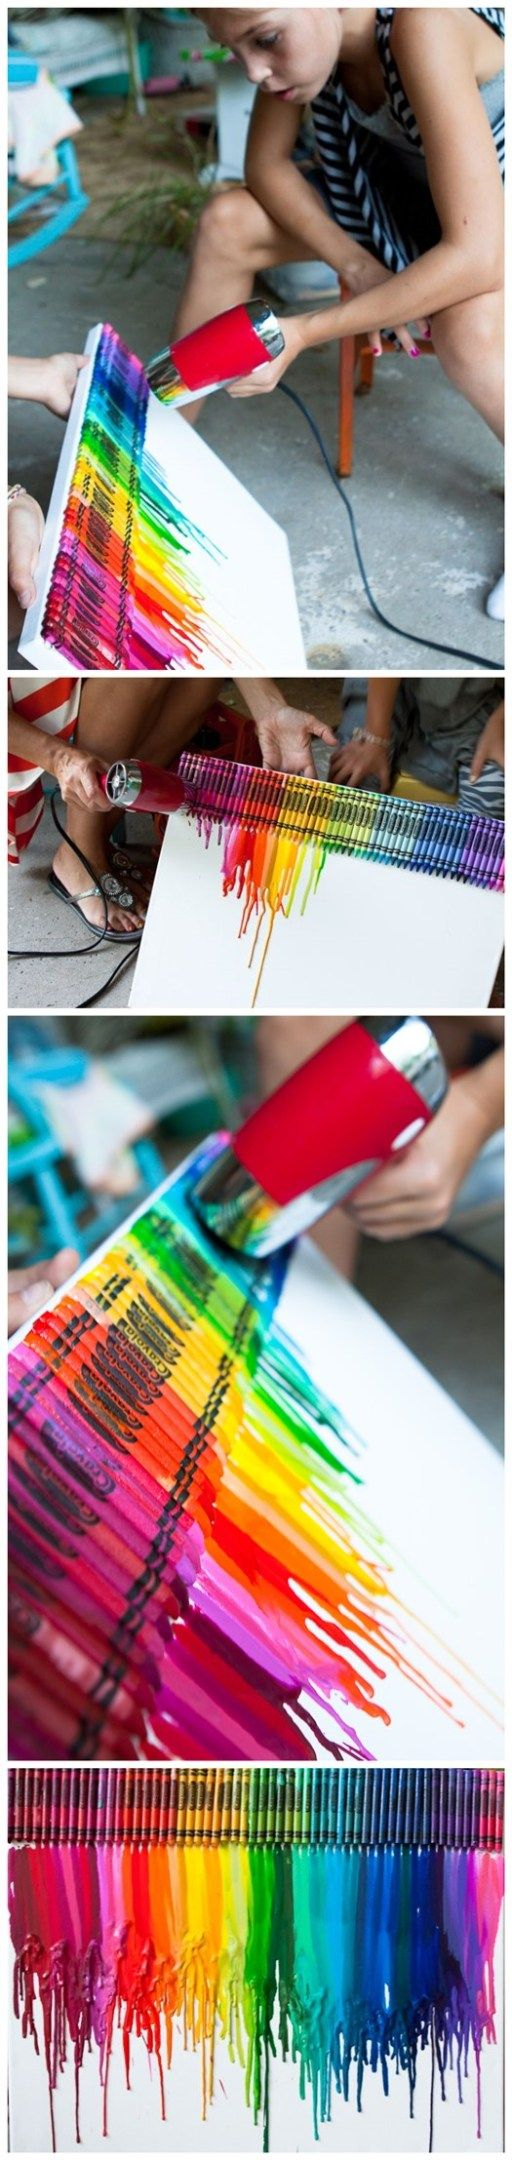 How to make colorful melting crayon canvas art diy tag for How to make a melted crayon art canvas